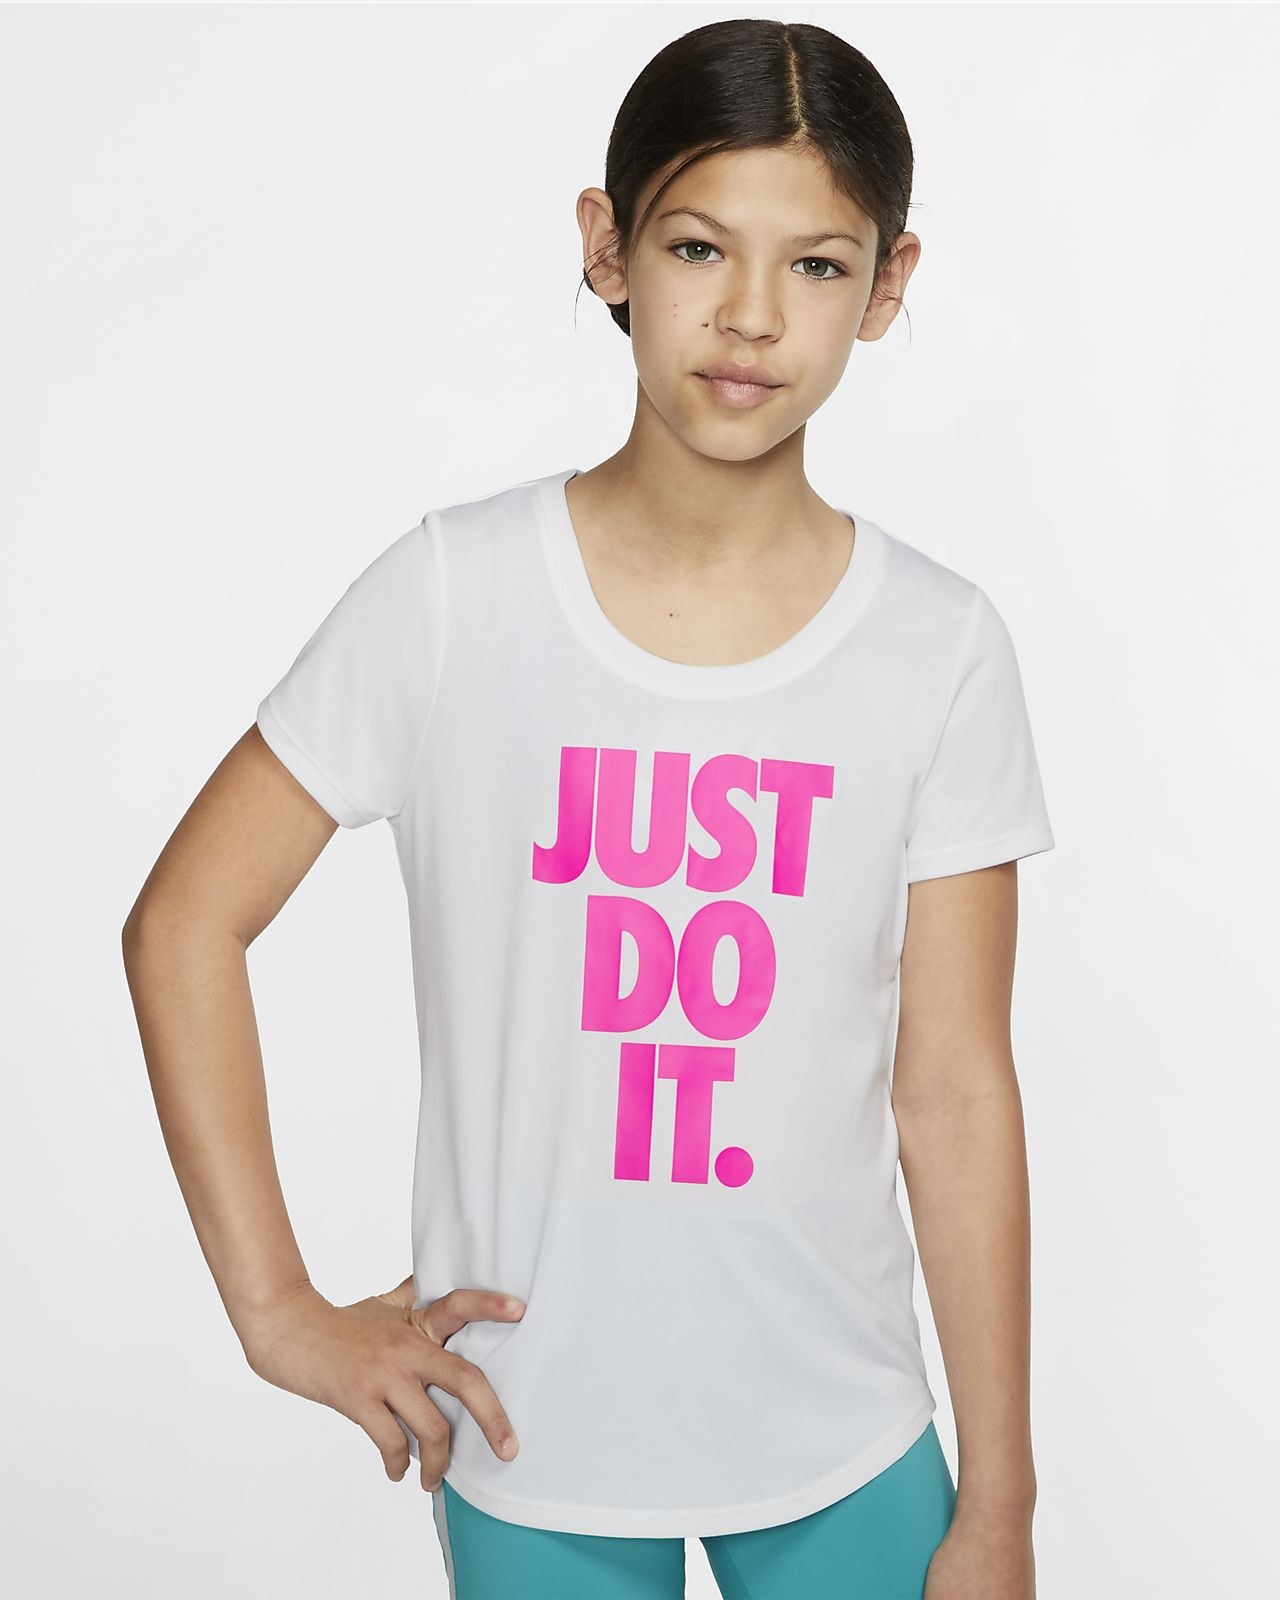 Nike Dri-FIT Older Kids' (Girls') Training T-Shirt